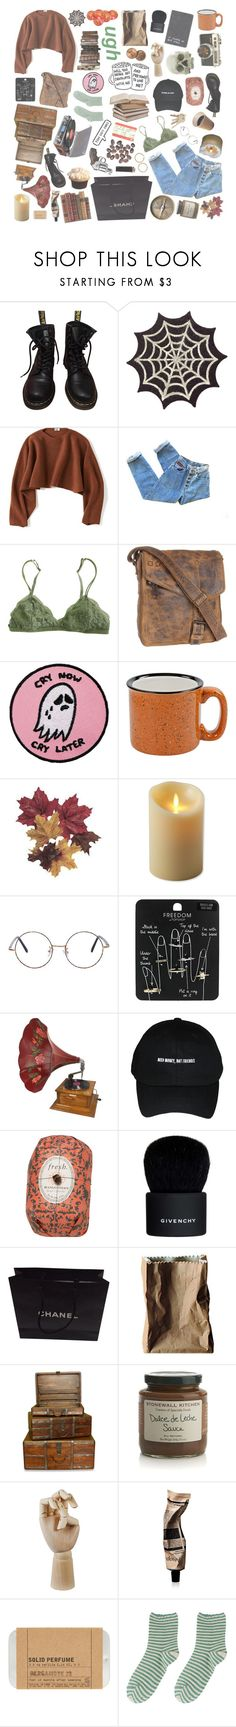 """""""i'll search the world until there's no place left to go and if she leaves it, i will follow"""" by nemophxlist ❤ liked on Polyvore featuring Dr. Martens, Uniqlo, Bed Stü, Luminara, Topshop, CO, Fresh, Givenchy, Chanel and Rosenthal"""